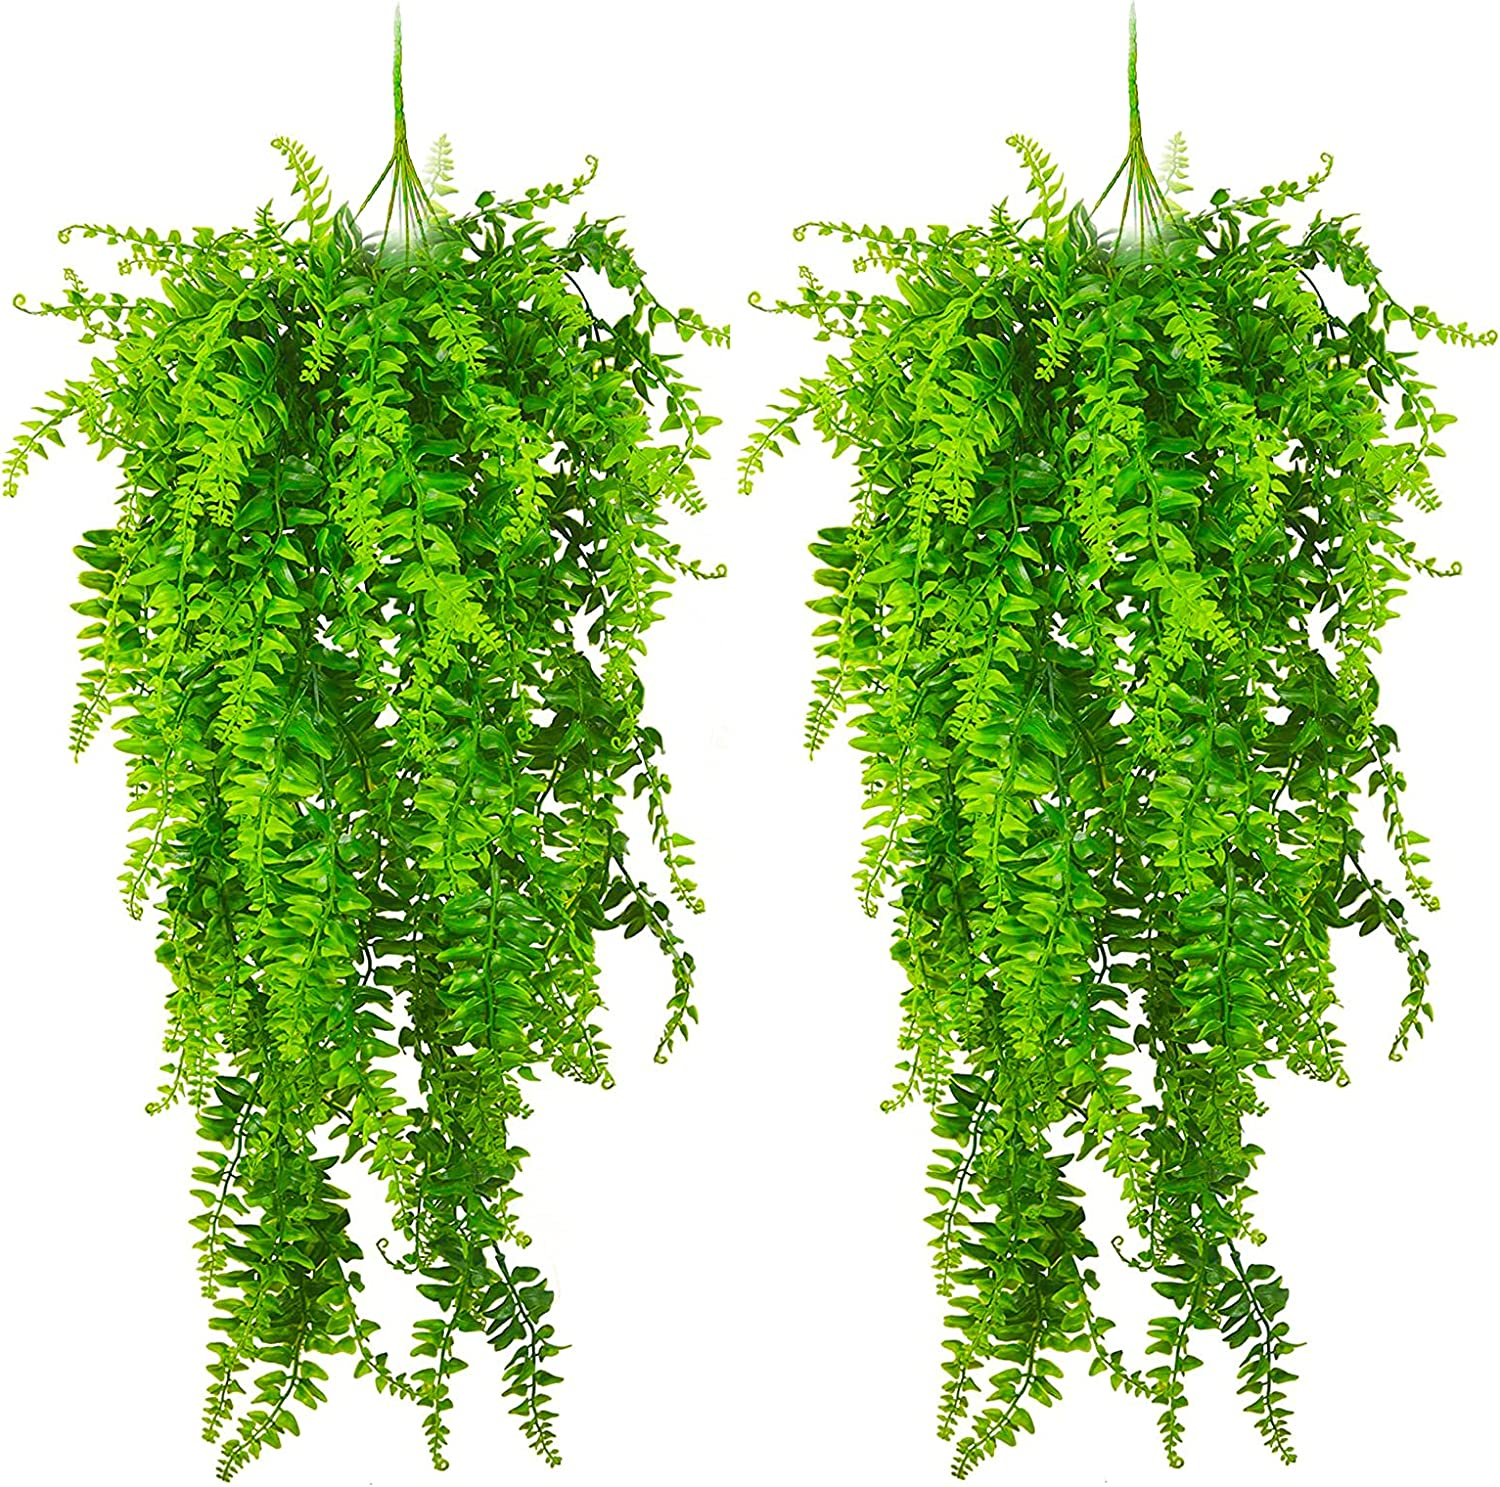 Artificial Plants Vines, Ferns Persian Rattan Fake Hanging Plant, Faux Hanging Boston Fern Flowers Vine, Outdoor UV Resistant Plastic Plants for Wall Indoor Hanging & Wedding Garland Décor (2 PCS)